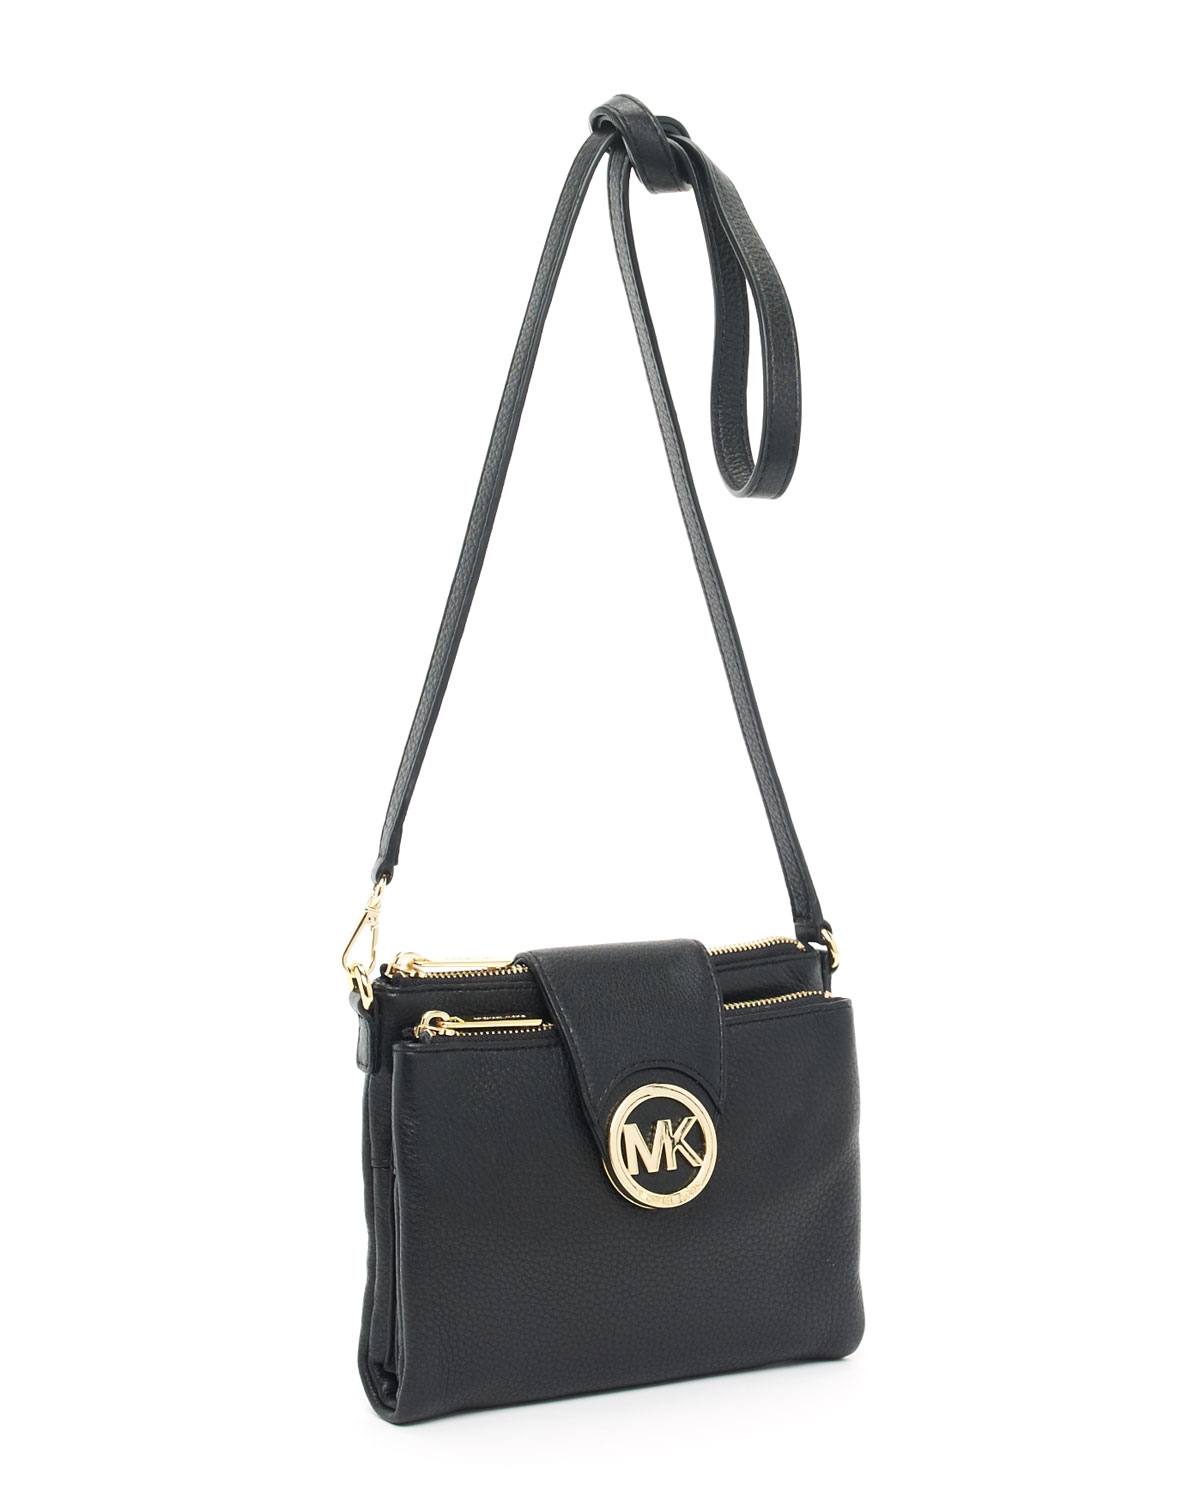 58a047eba938 Michael Kors Fulton Large Crossbody in Black - Lyst